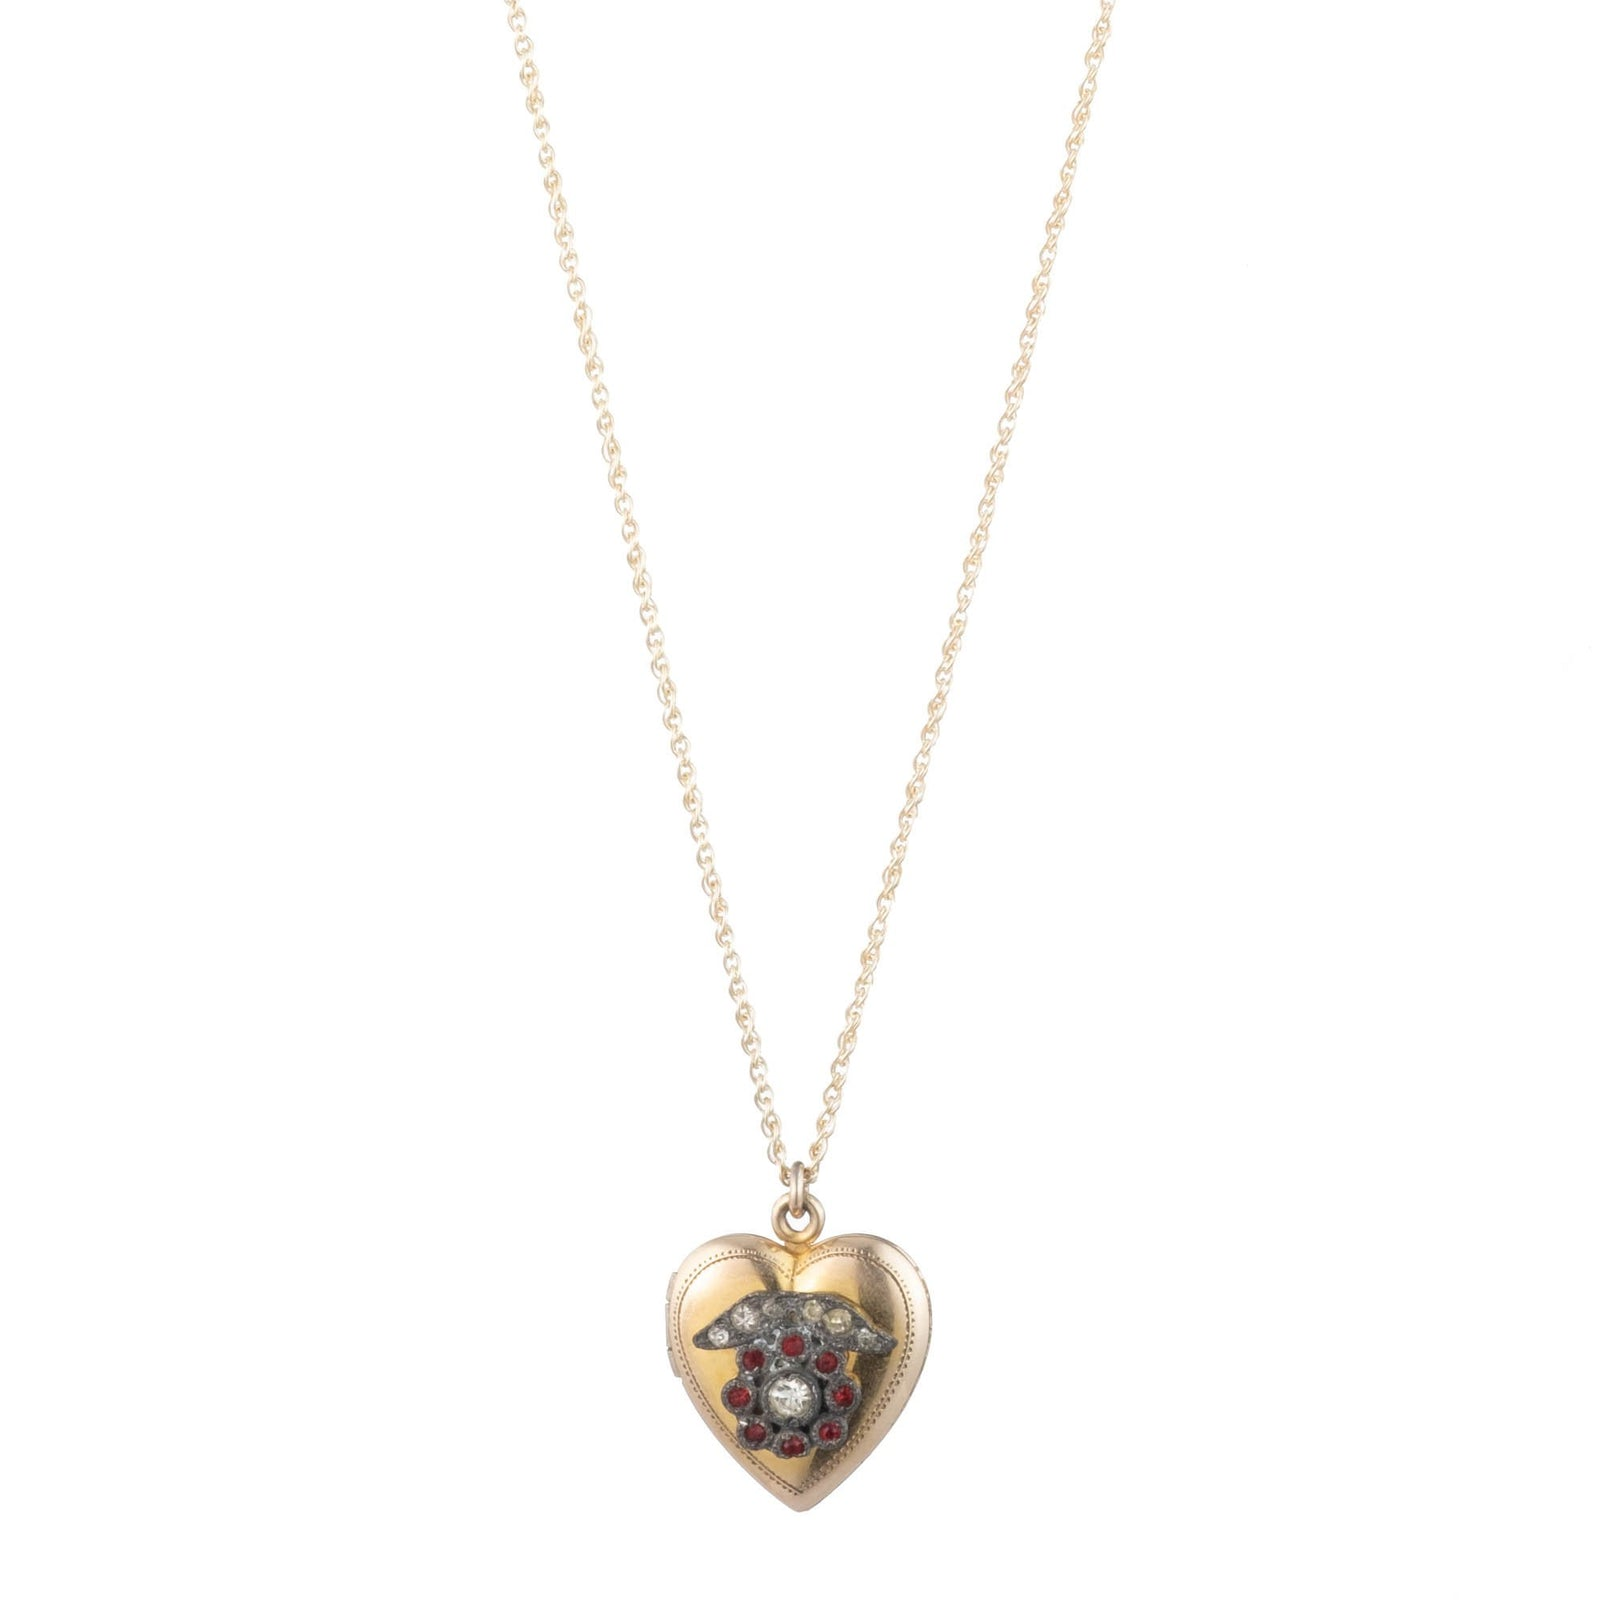 Vintage 1930s 12k Gold Filled Heart Locket Necklace with Pot Metal Flower